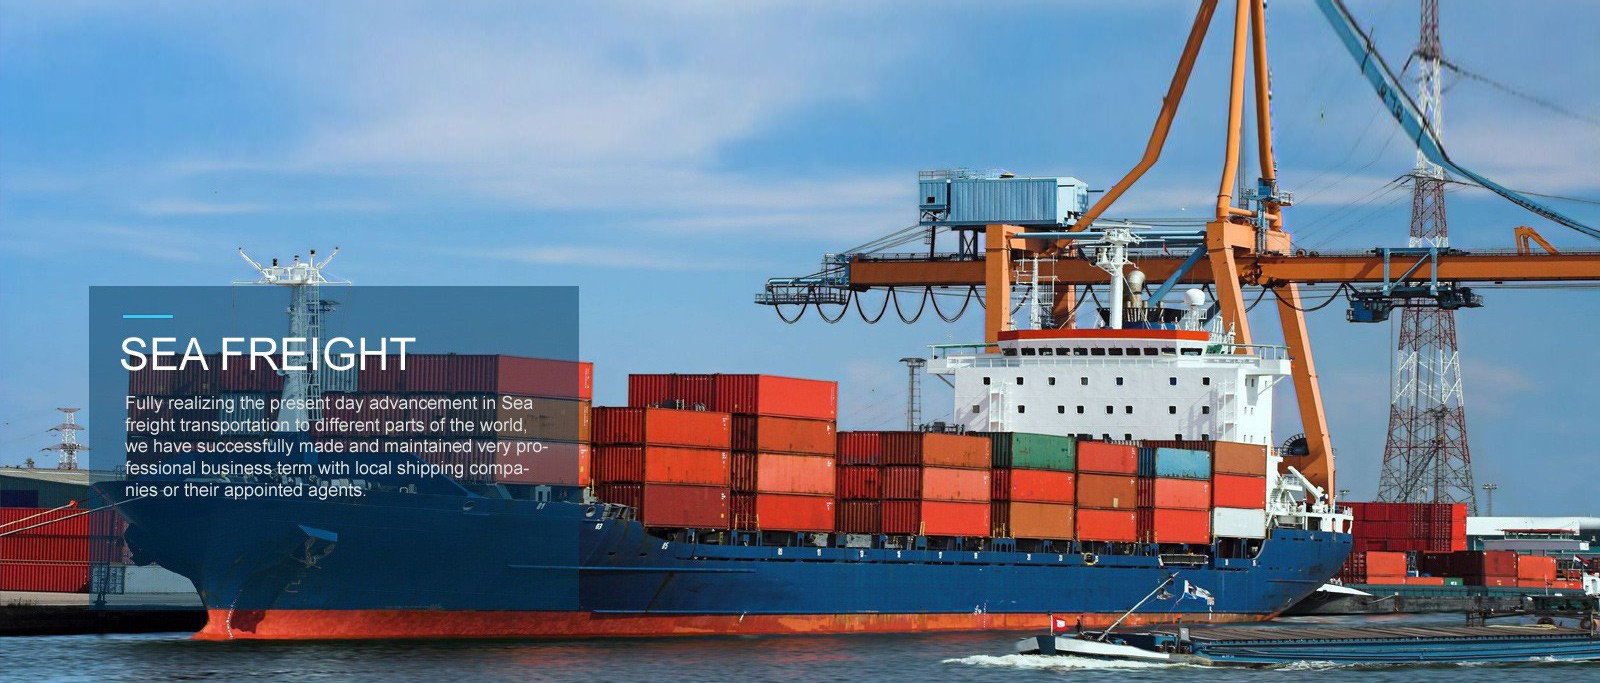 Matrix-Logistics-Sea-Freight